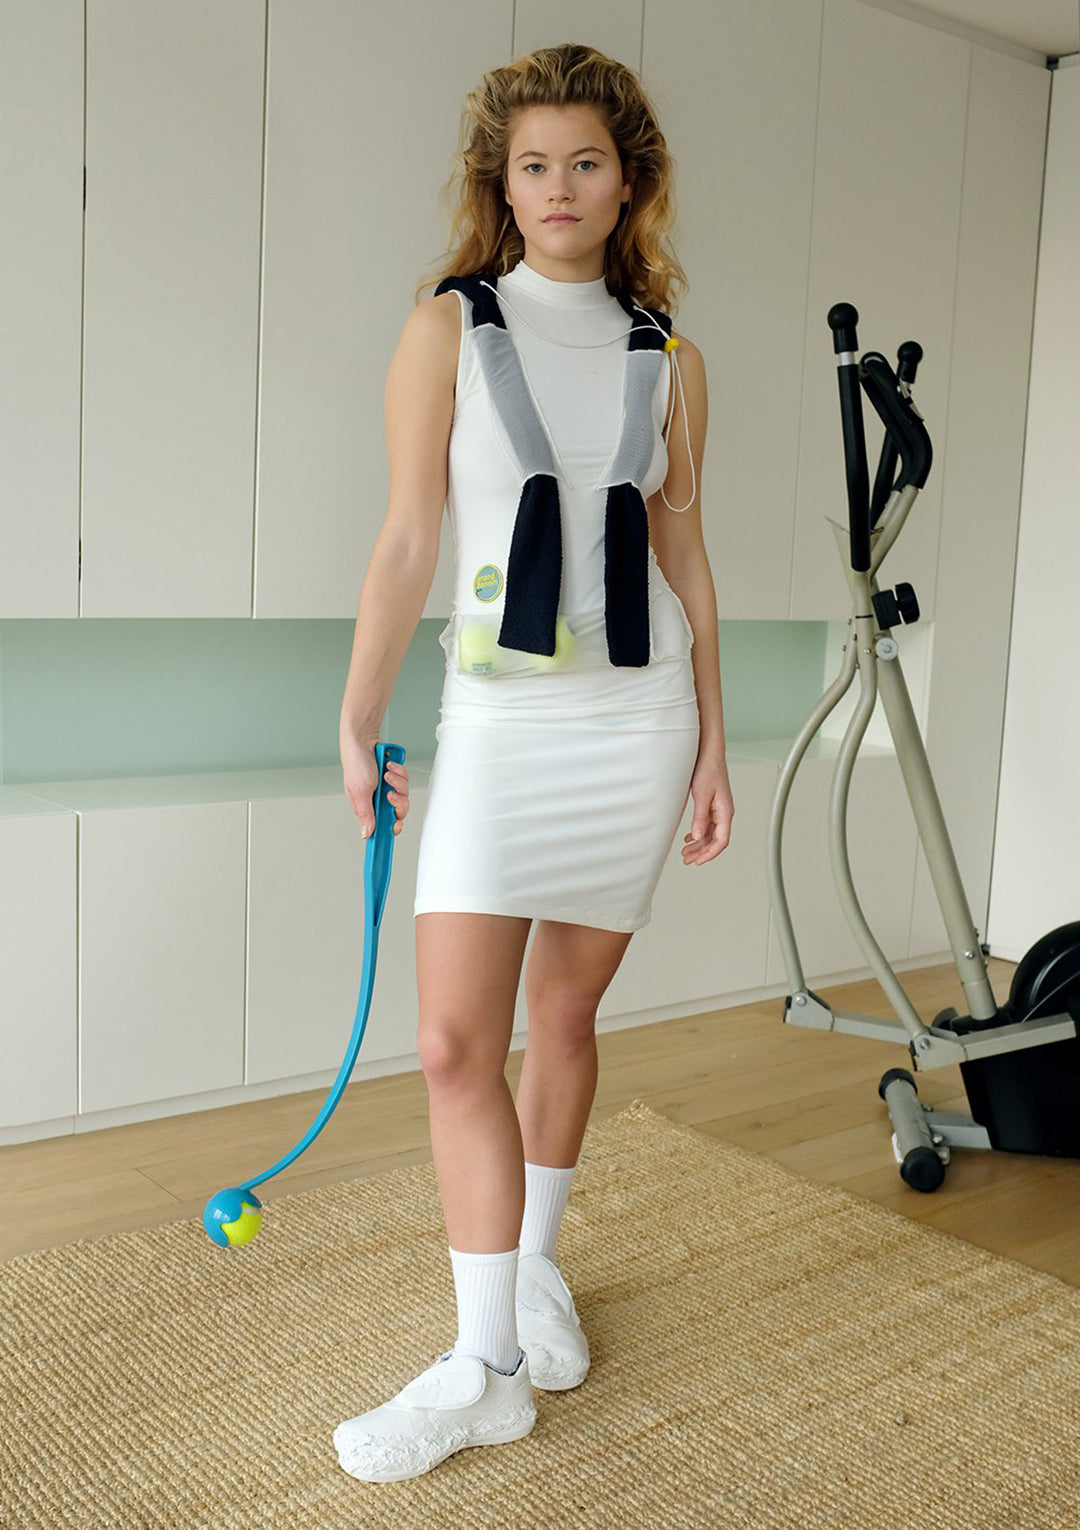 GB150 - TENNIS DRESS AND HOOD - KIT